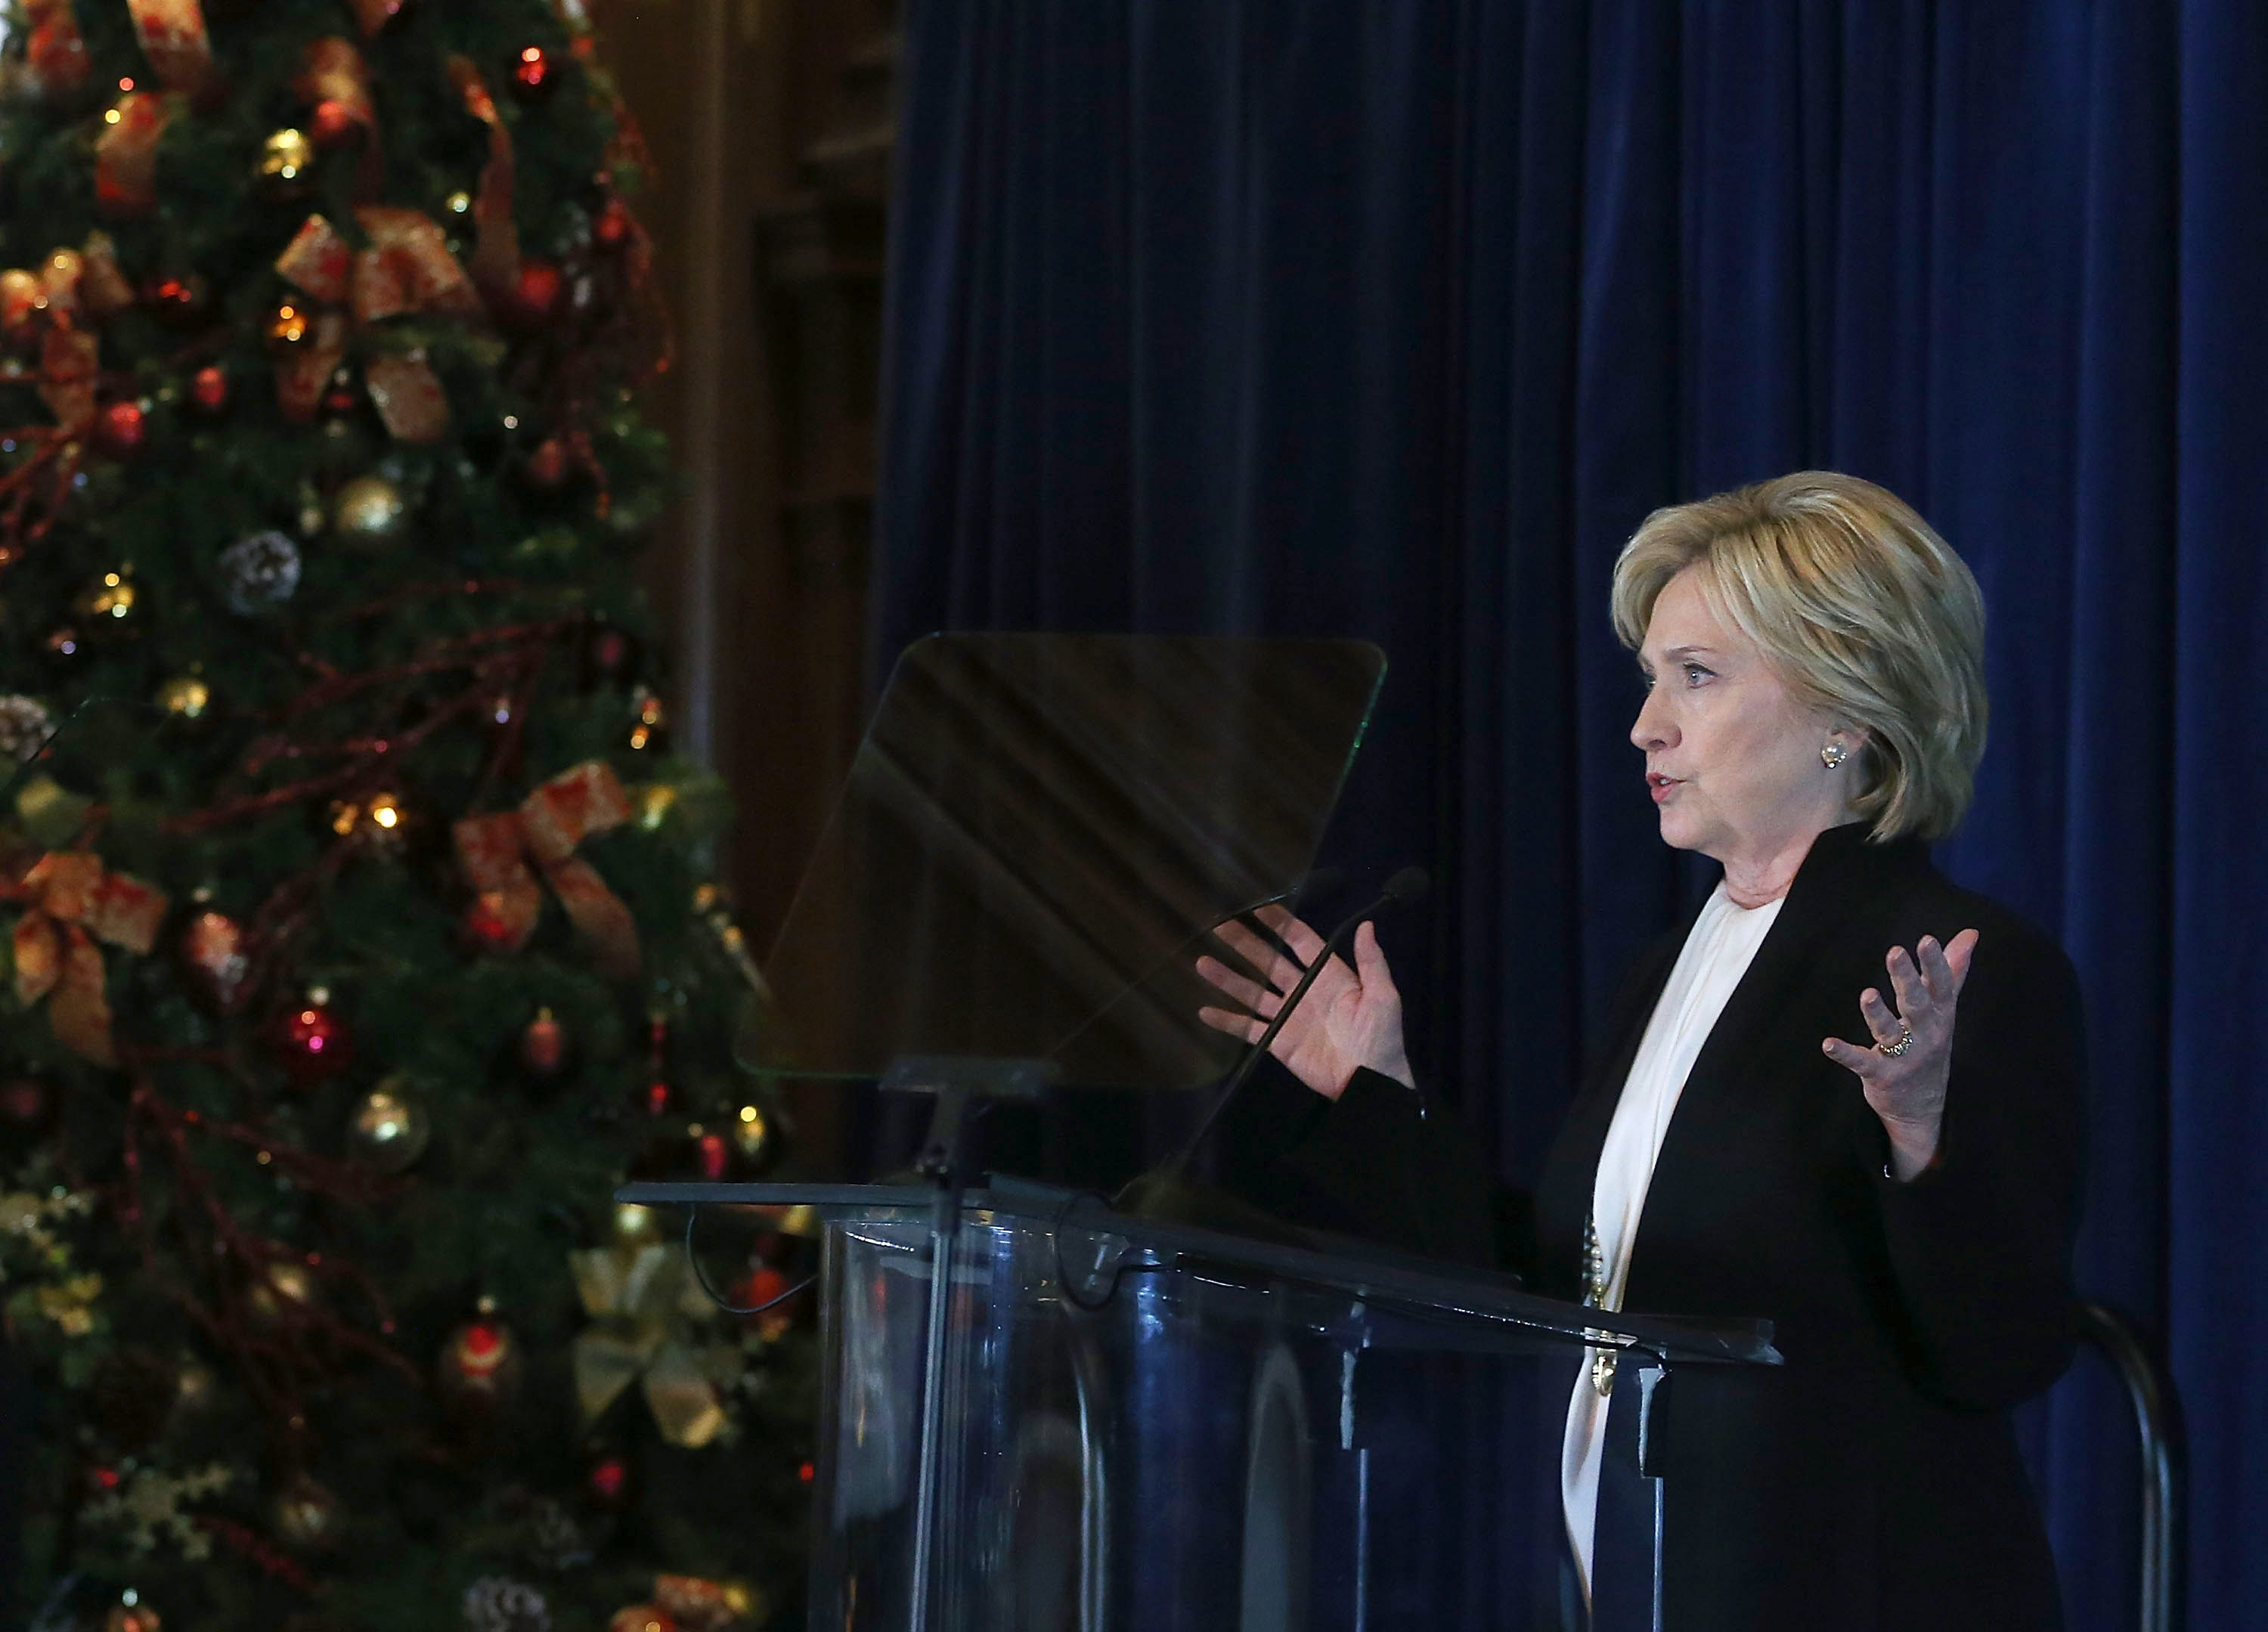 WASHINGTON, DC - DECEMBER 06:  Democratic presidential candidate Hillary Clinton speaks about relations with Israel and the situation with ISIS at the Willard Hotel, December 6, 2015 in Washington, DC. Clinton addressed guests gathered at the Brookings 2015 Forum.  (Photo by Mark Wilson/Getty Images)